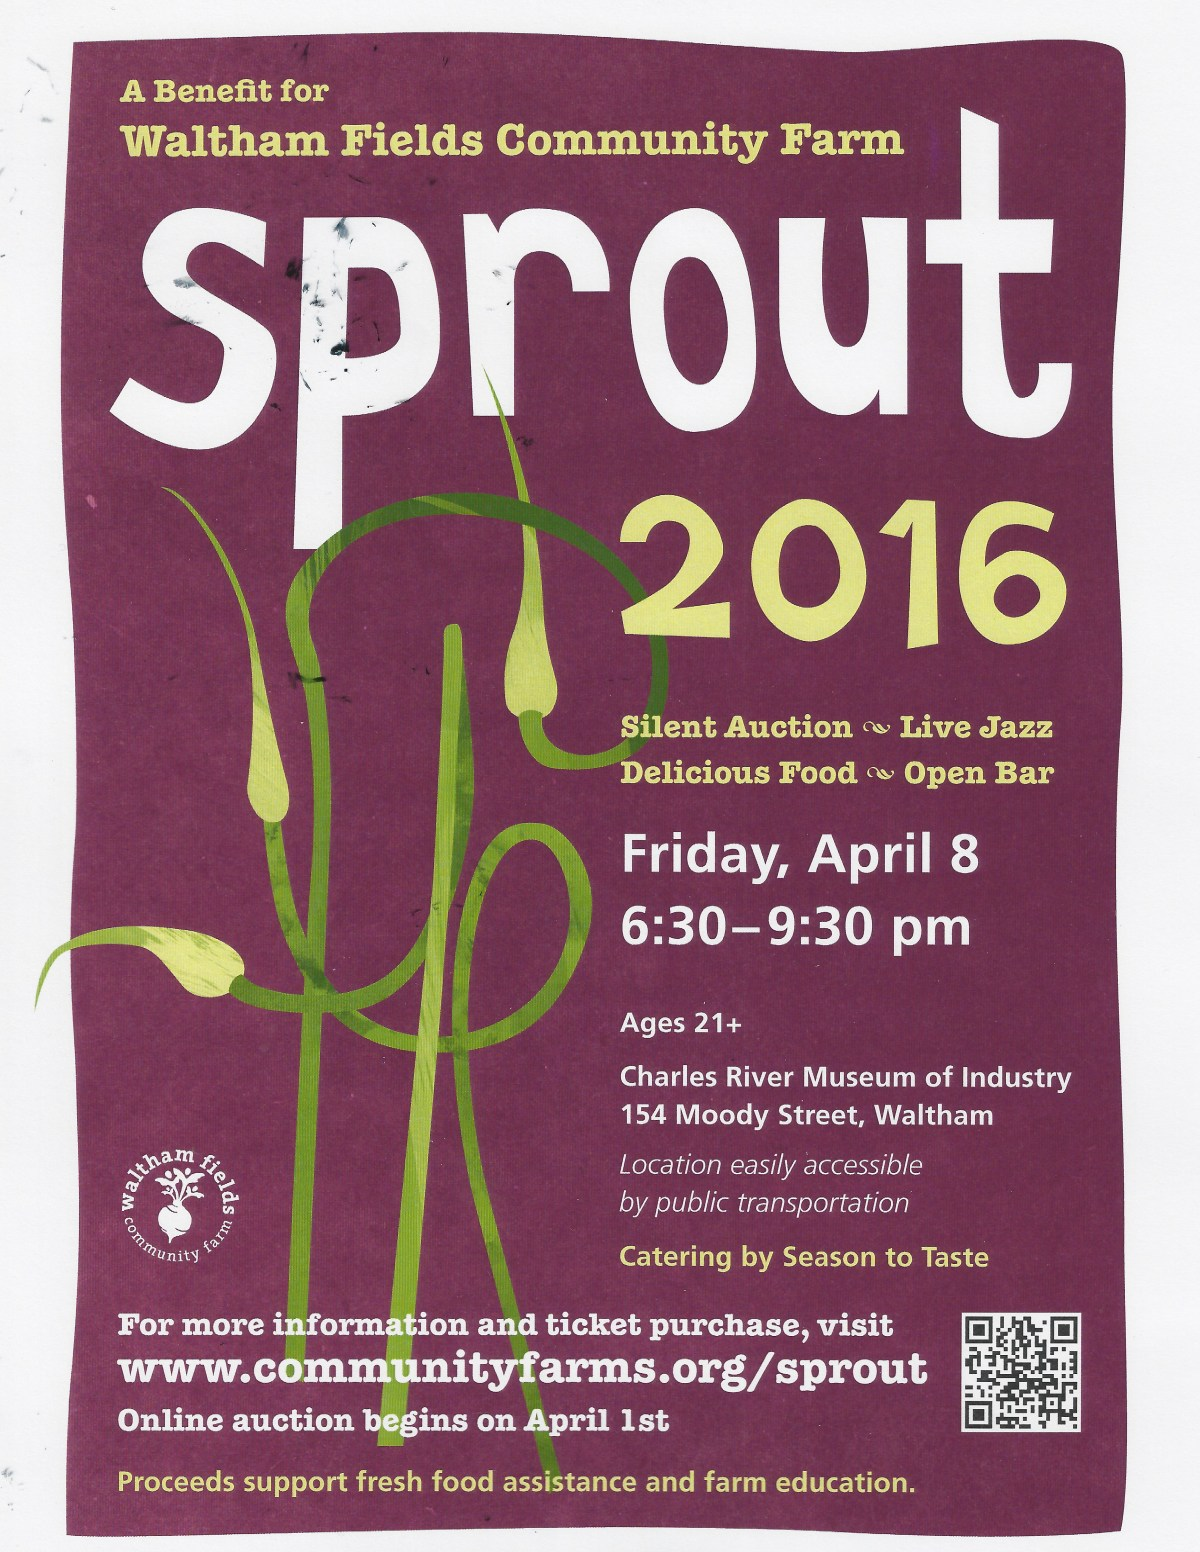 SPROUT 2016